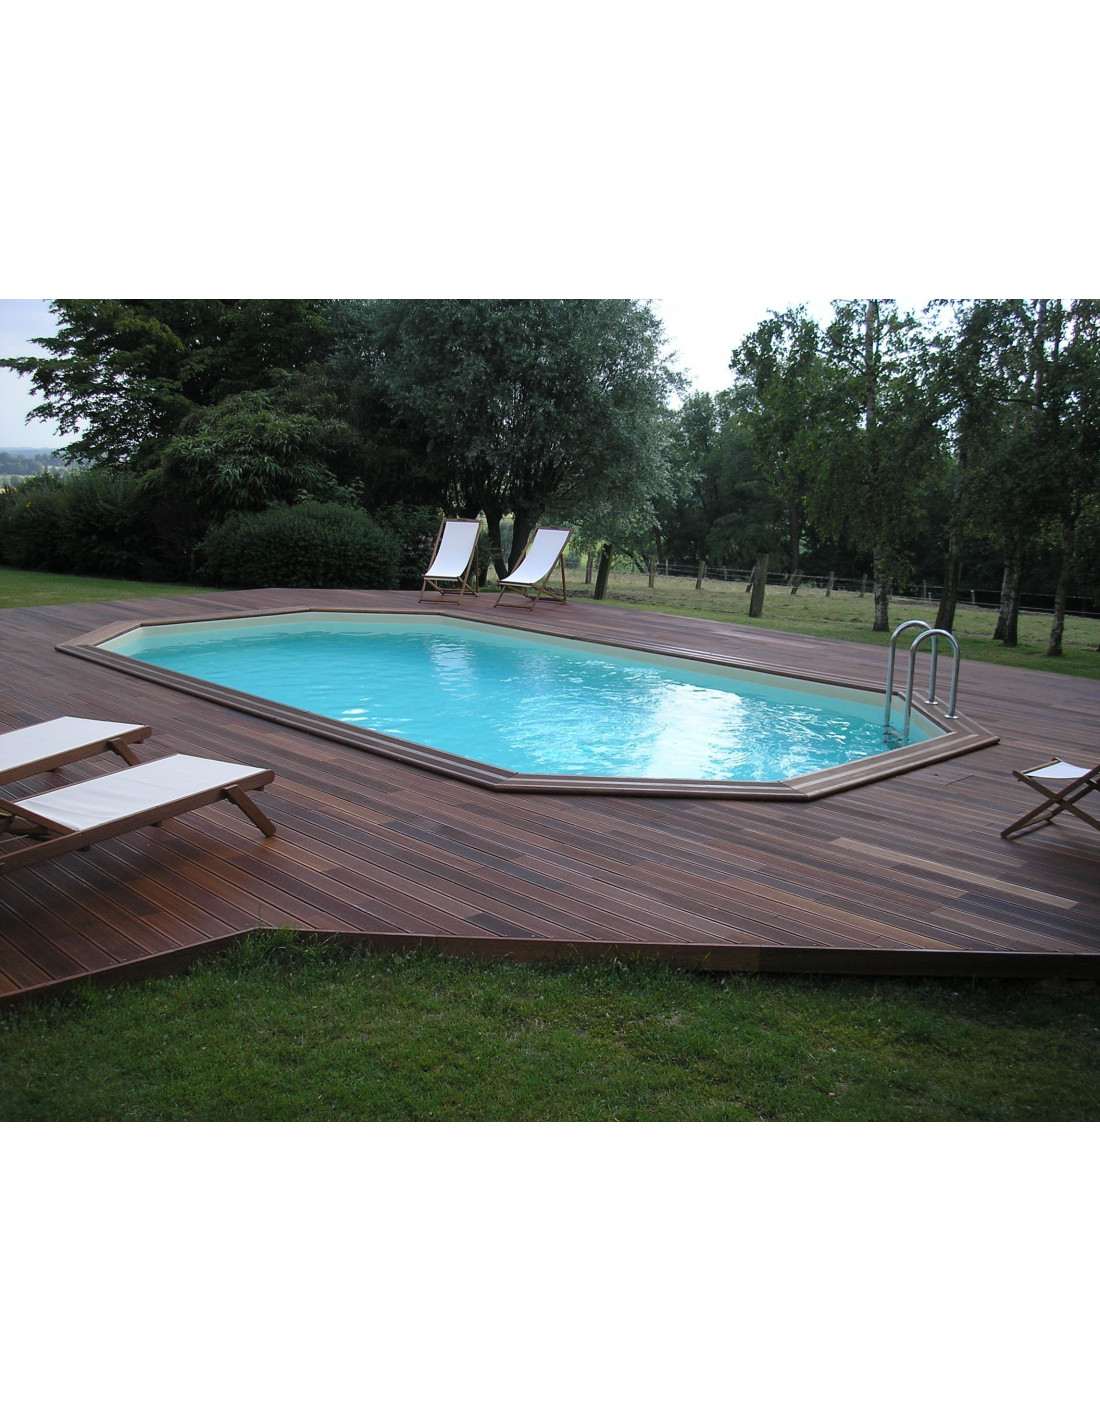 Promo piscine bois octogonale for Promo piscine bois octogonale